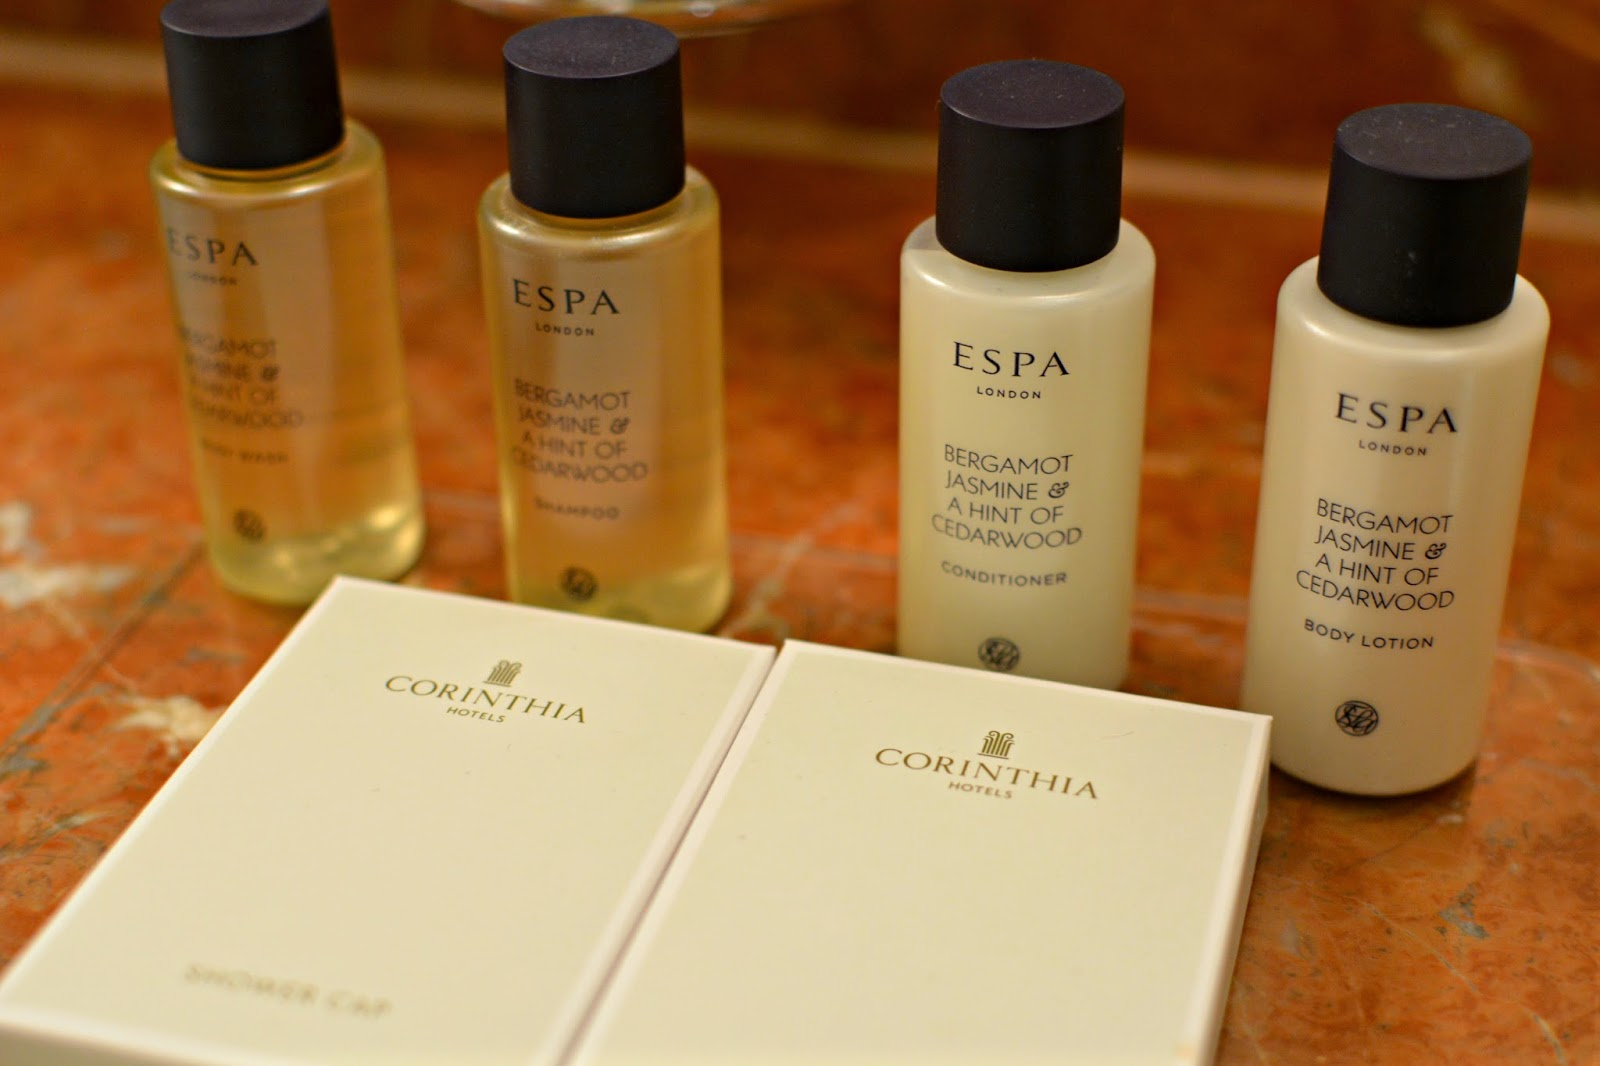 The Corinthia hotel budapest ESPA bath amenities